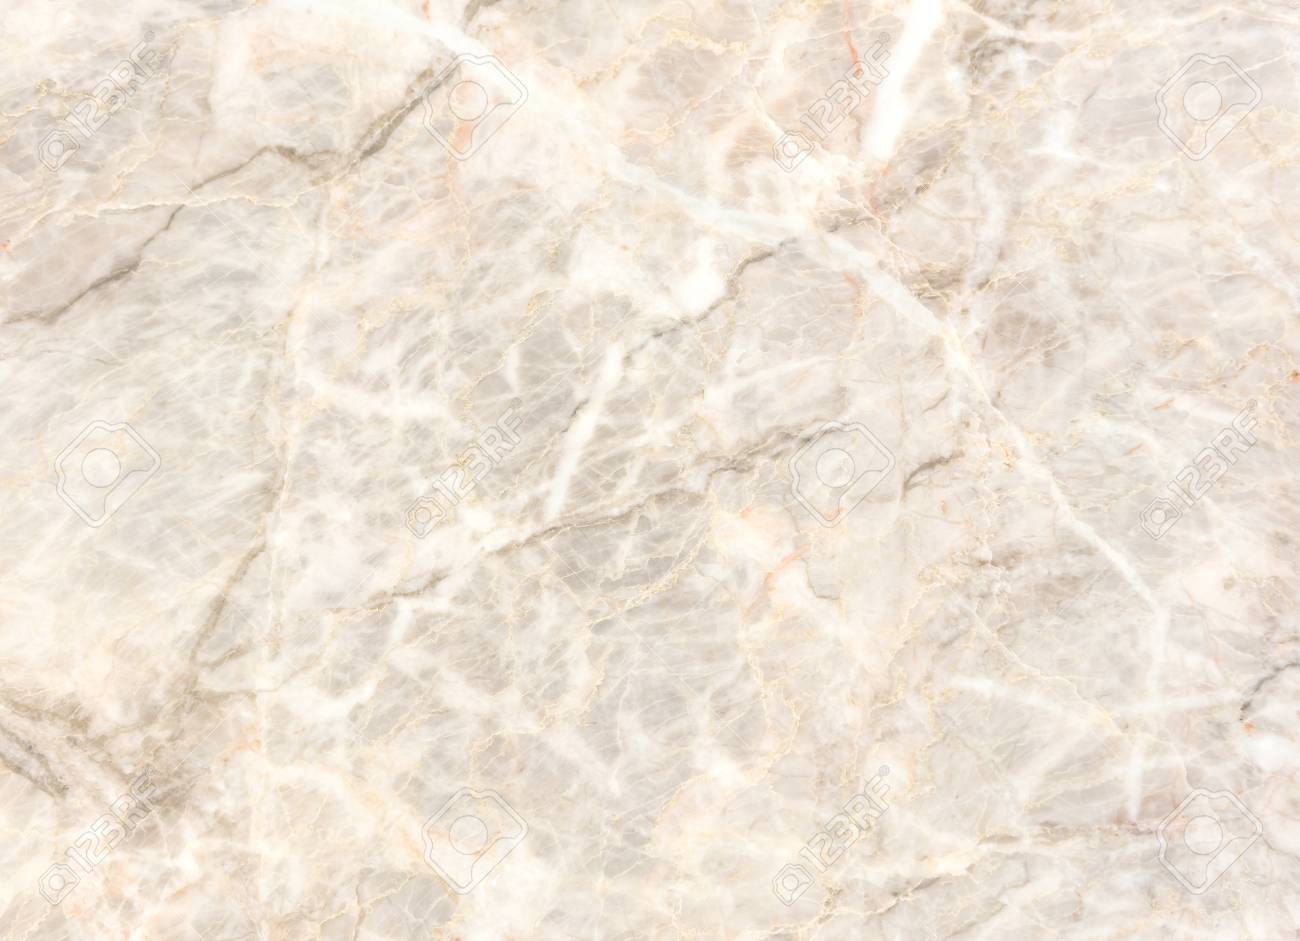 Beige Marble Stone Natural Light For Bathroom Or Kitchen White Stock Photo Picture And Royalty Free Image Image 93634280